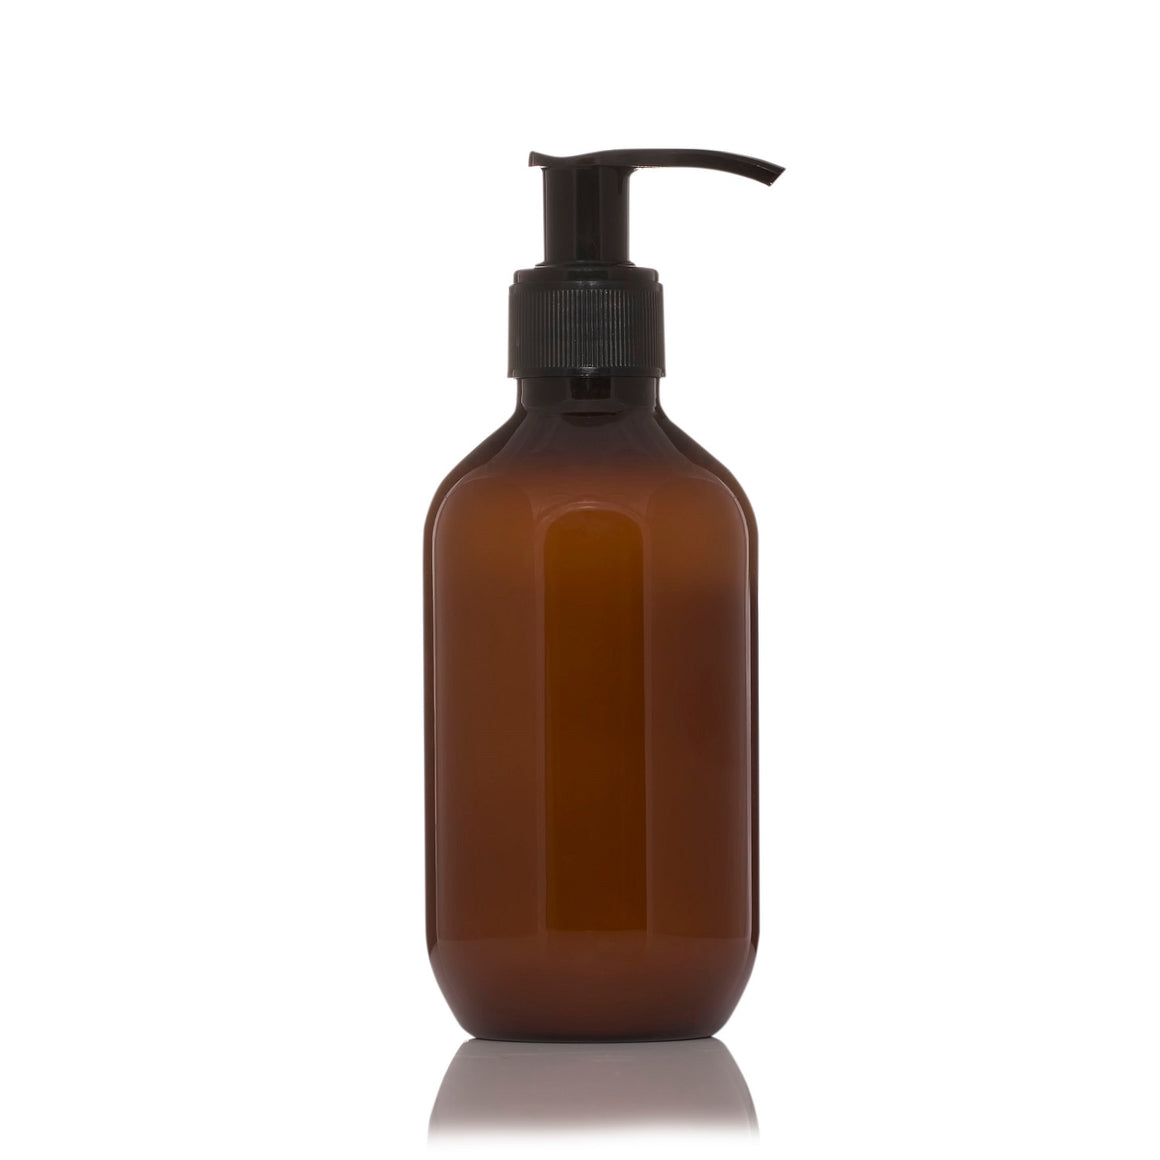 Native Milk Cleanser - 200ml Natural